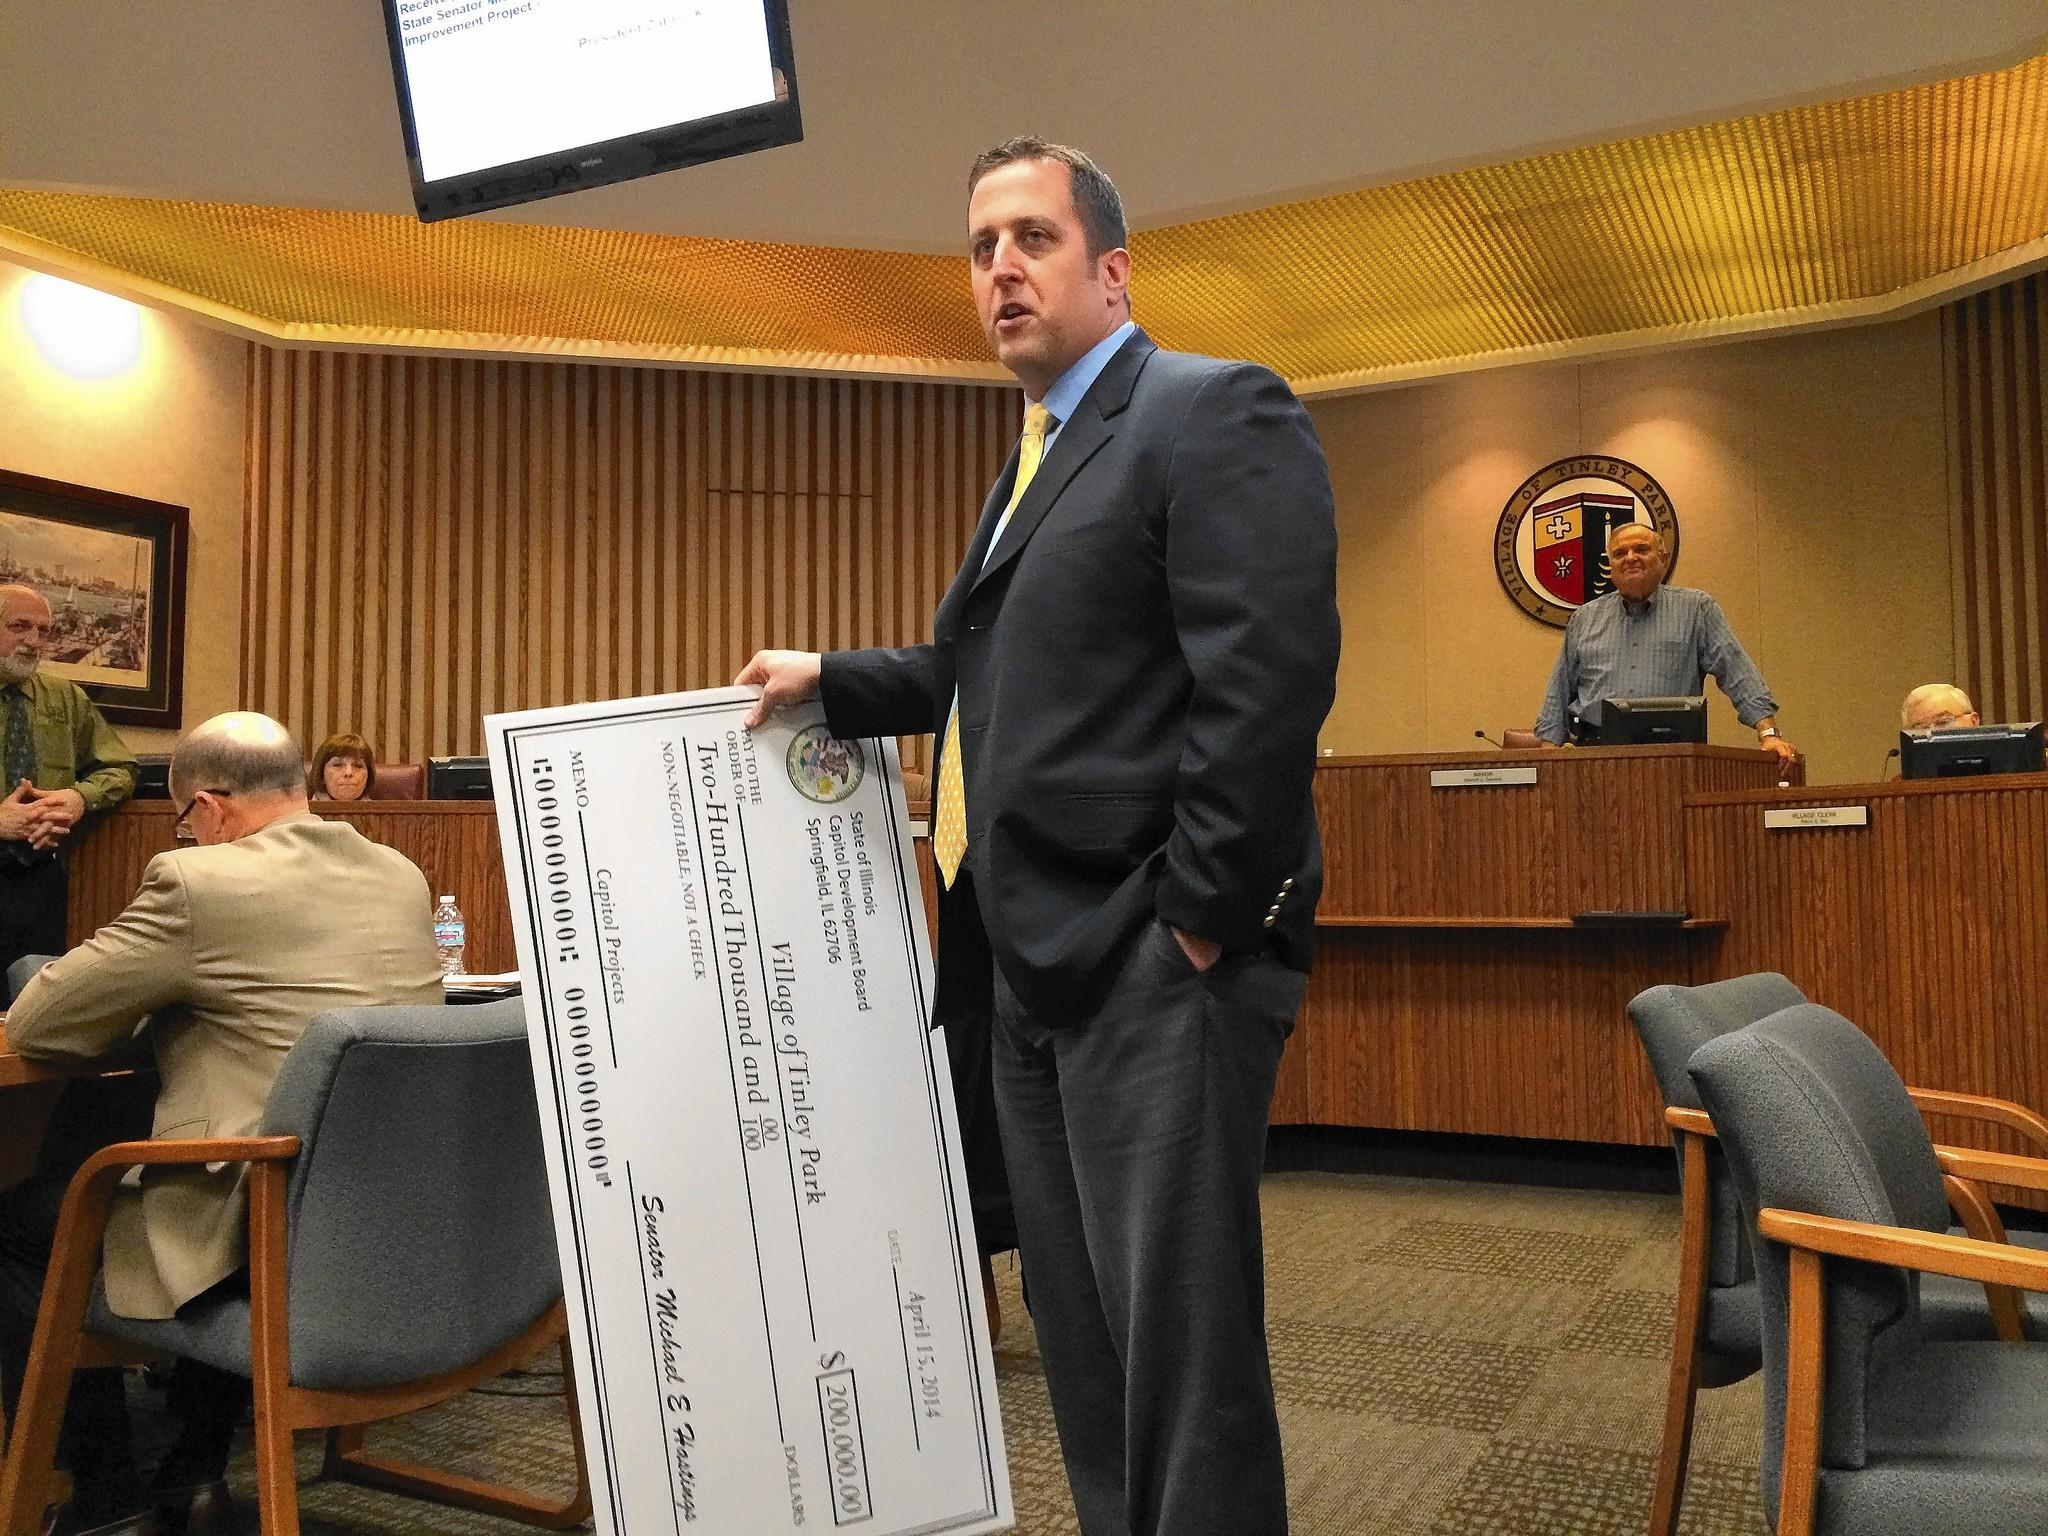 State Sen. Michael Hastings presents Tinley Park officials with a $200,000 check for a new traffic signal near the 80th Avenue train station.